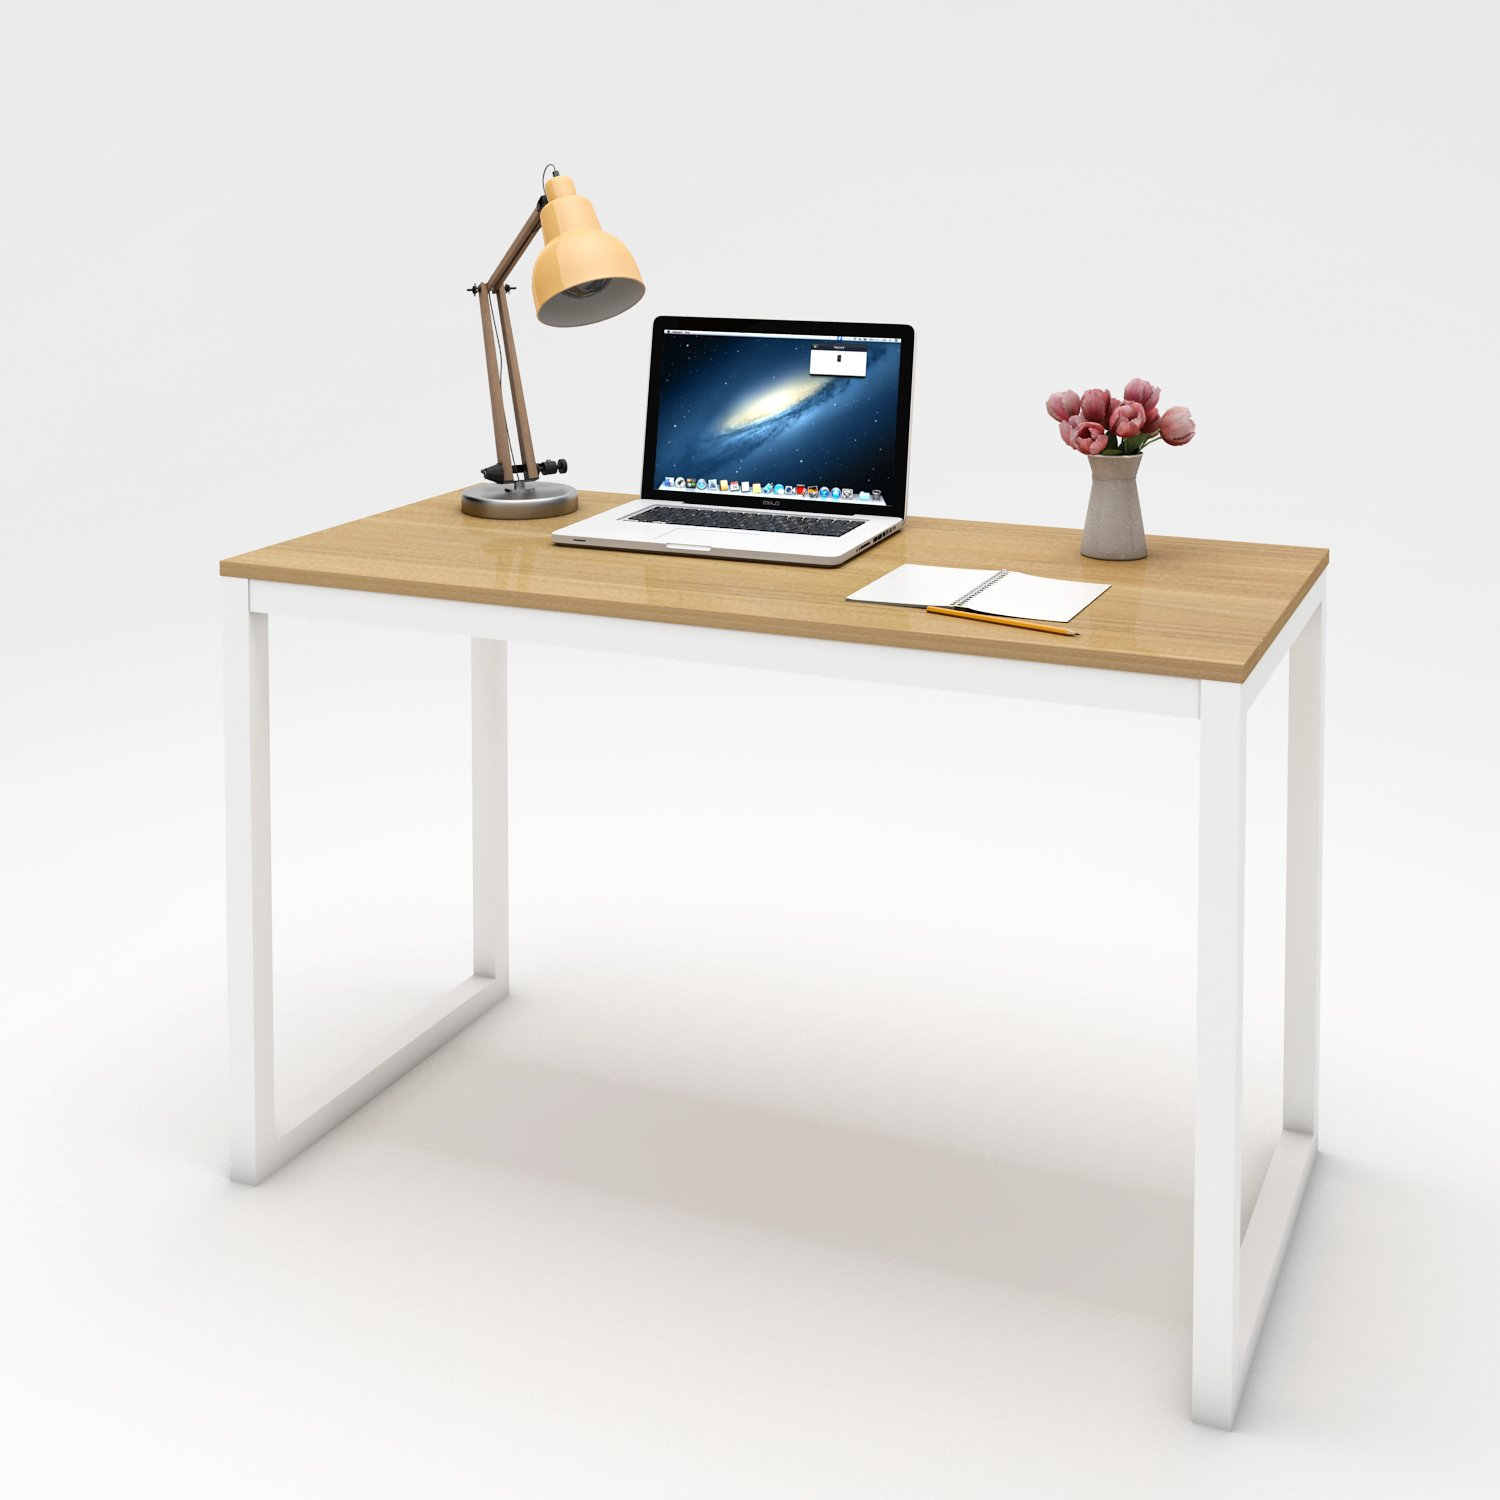 """Lifewit 47""""x23"""" Computer Desk PC Laptop Desk, Large Study Table, Modern Simple Writing Table for Home / Office / Workstation, Burlywood Color"""